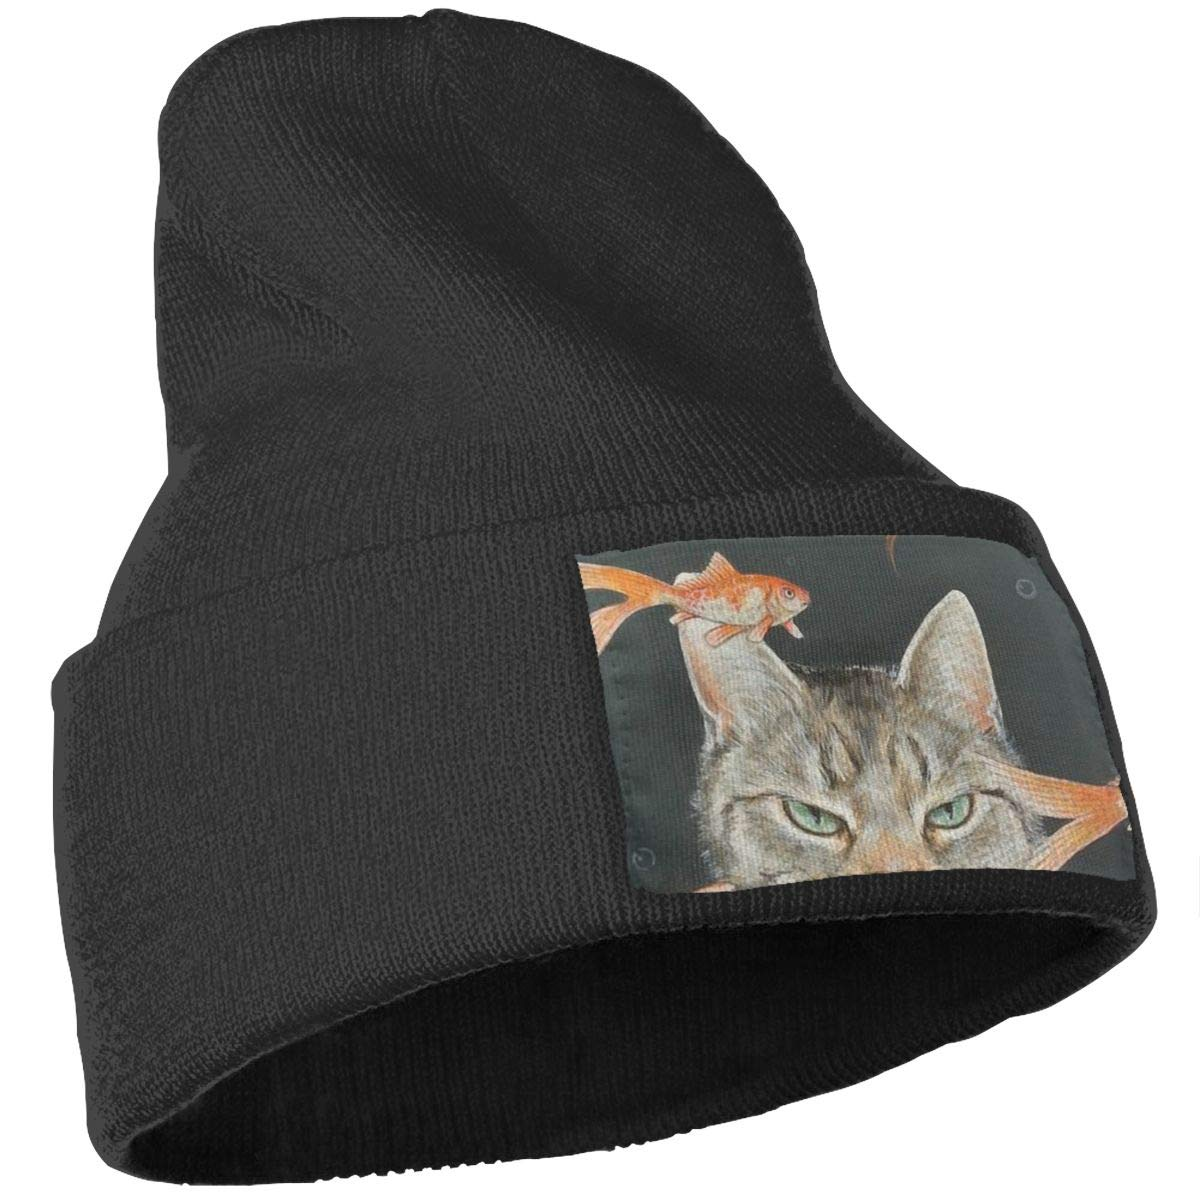 Painting Cat Hat for Men and Women Winter Warm Hats Knit Slouchy Thick Skull Cap Black